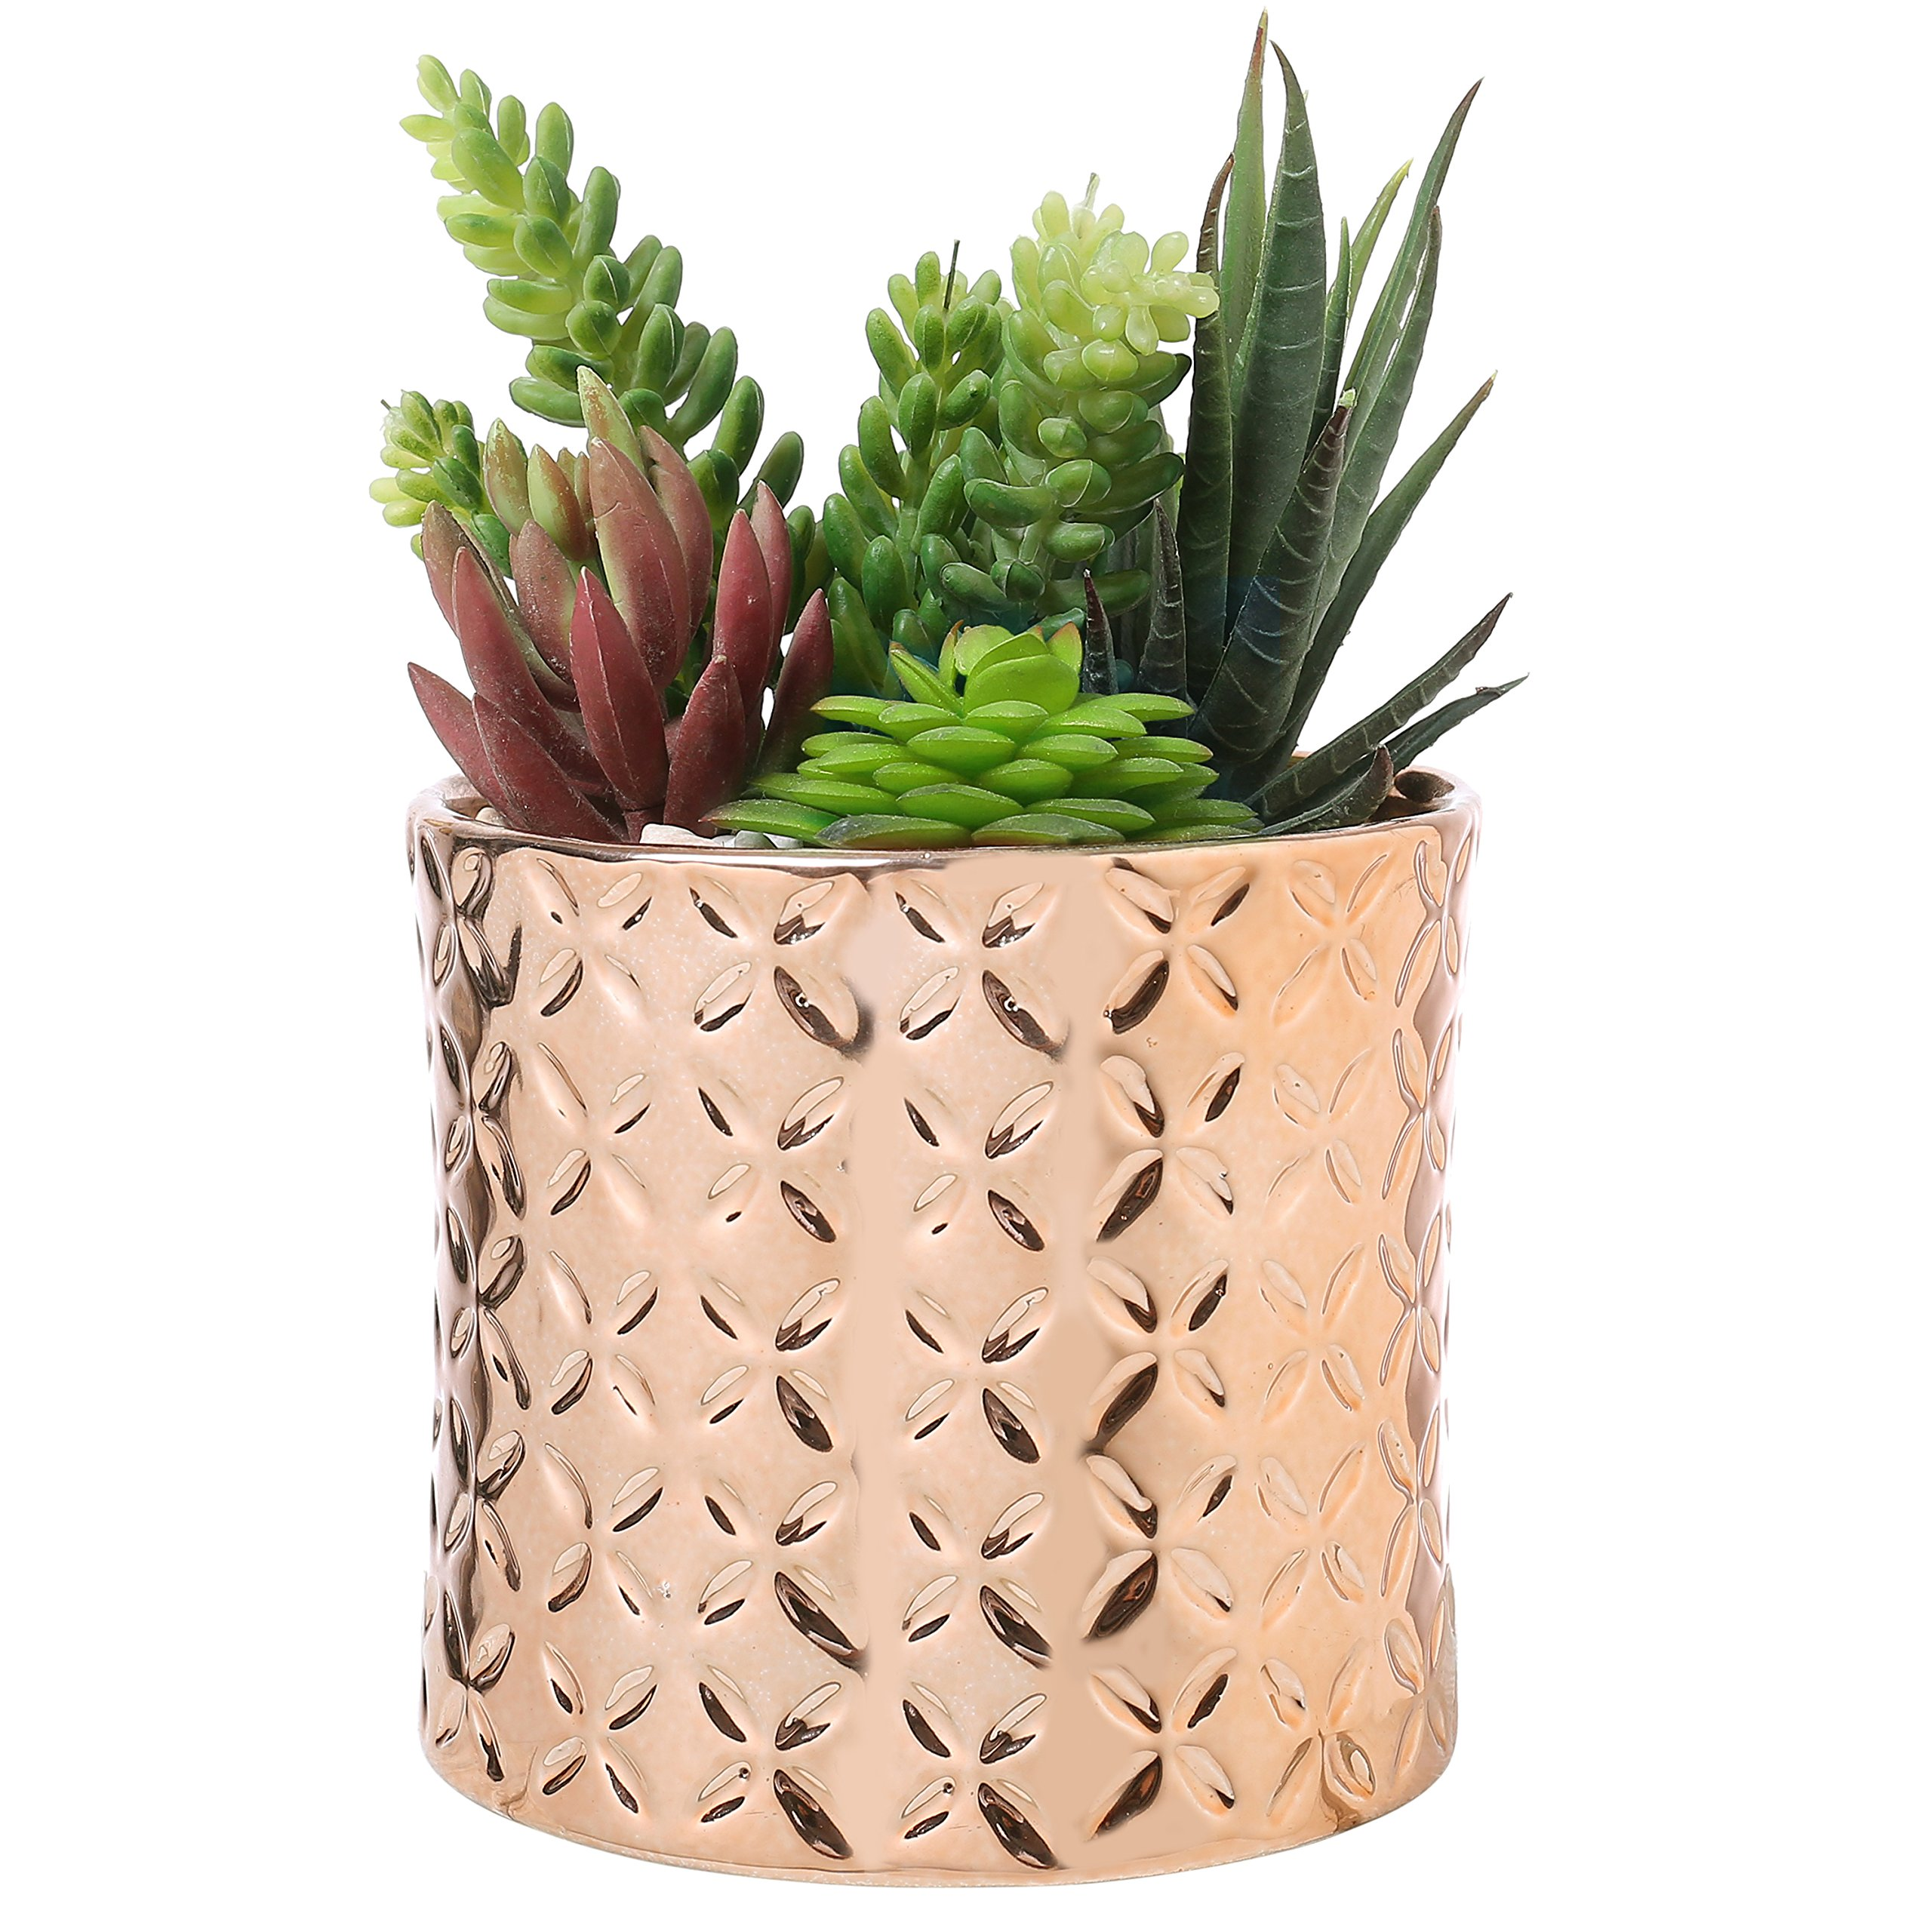 5-Inch Ceramic Canister Planter with Metallic Copper-Tone Finish and Diamond Debossed Texture by MyGift